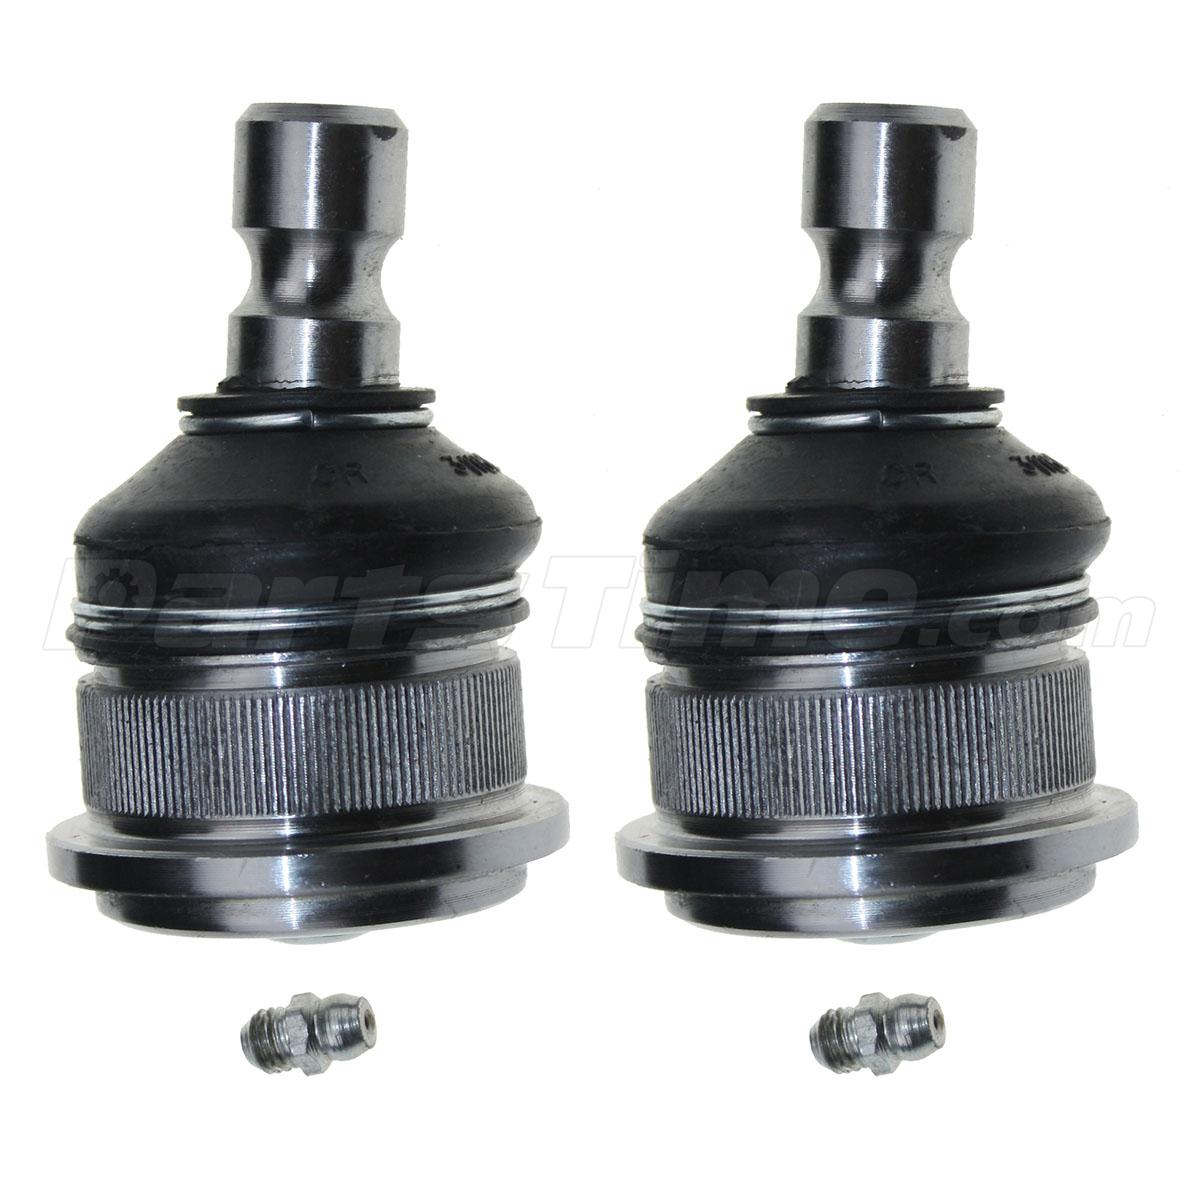 2004 Buick Rainier For Sale: 2 Pieces Front Upper Ball Joint For 2004-2007 Buick